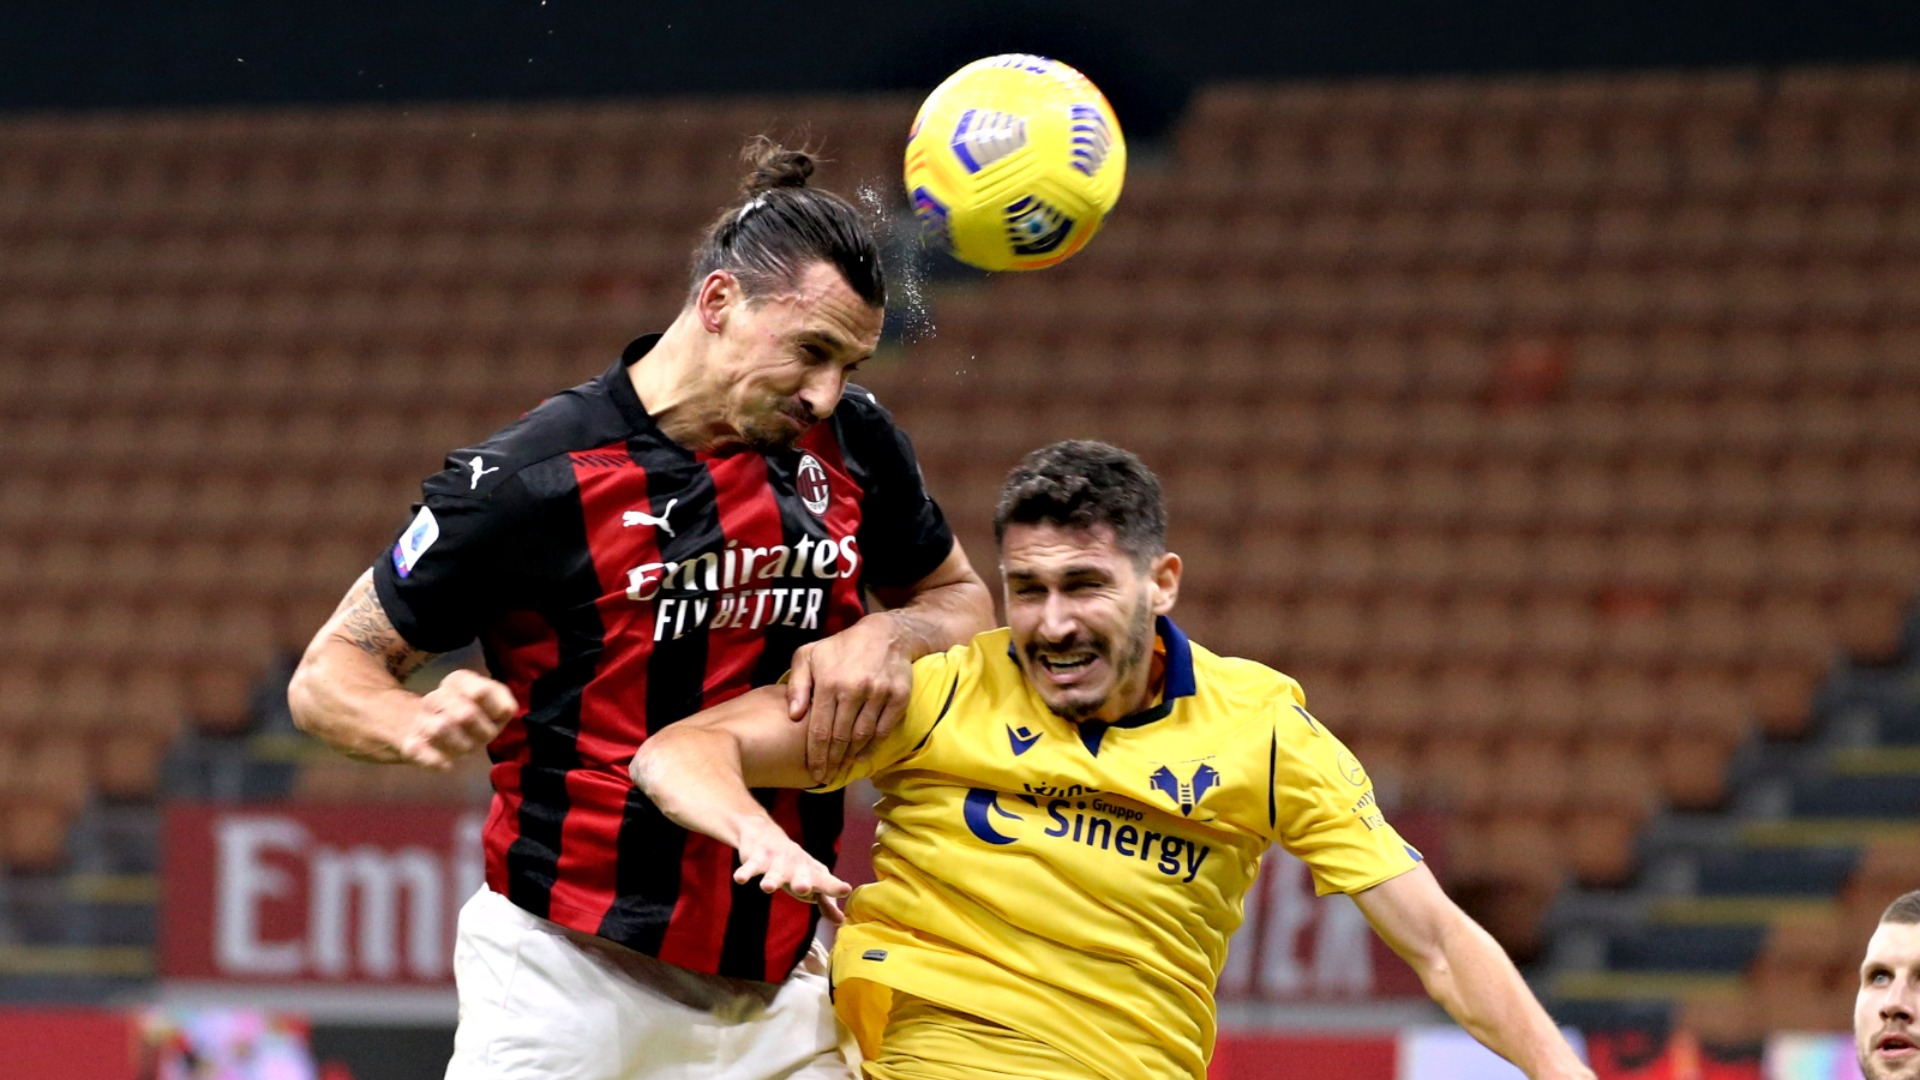 Milan 2-2 Hellas Verona: Zlatan Ibrahimovic salvages late point after  missing penalty   Goal.com